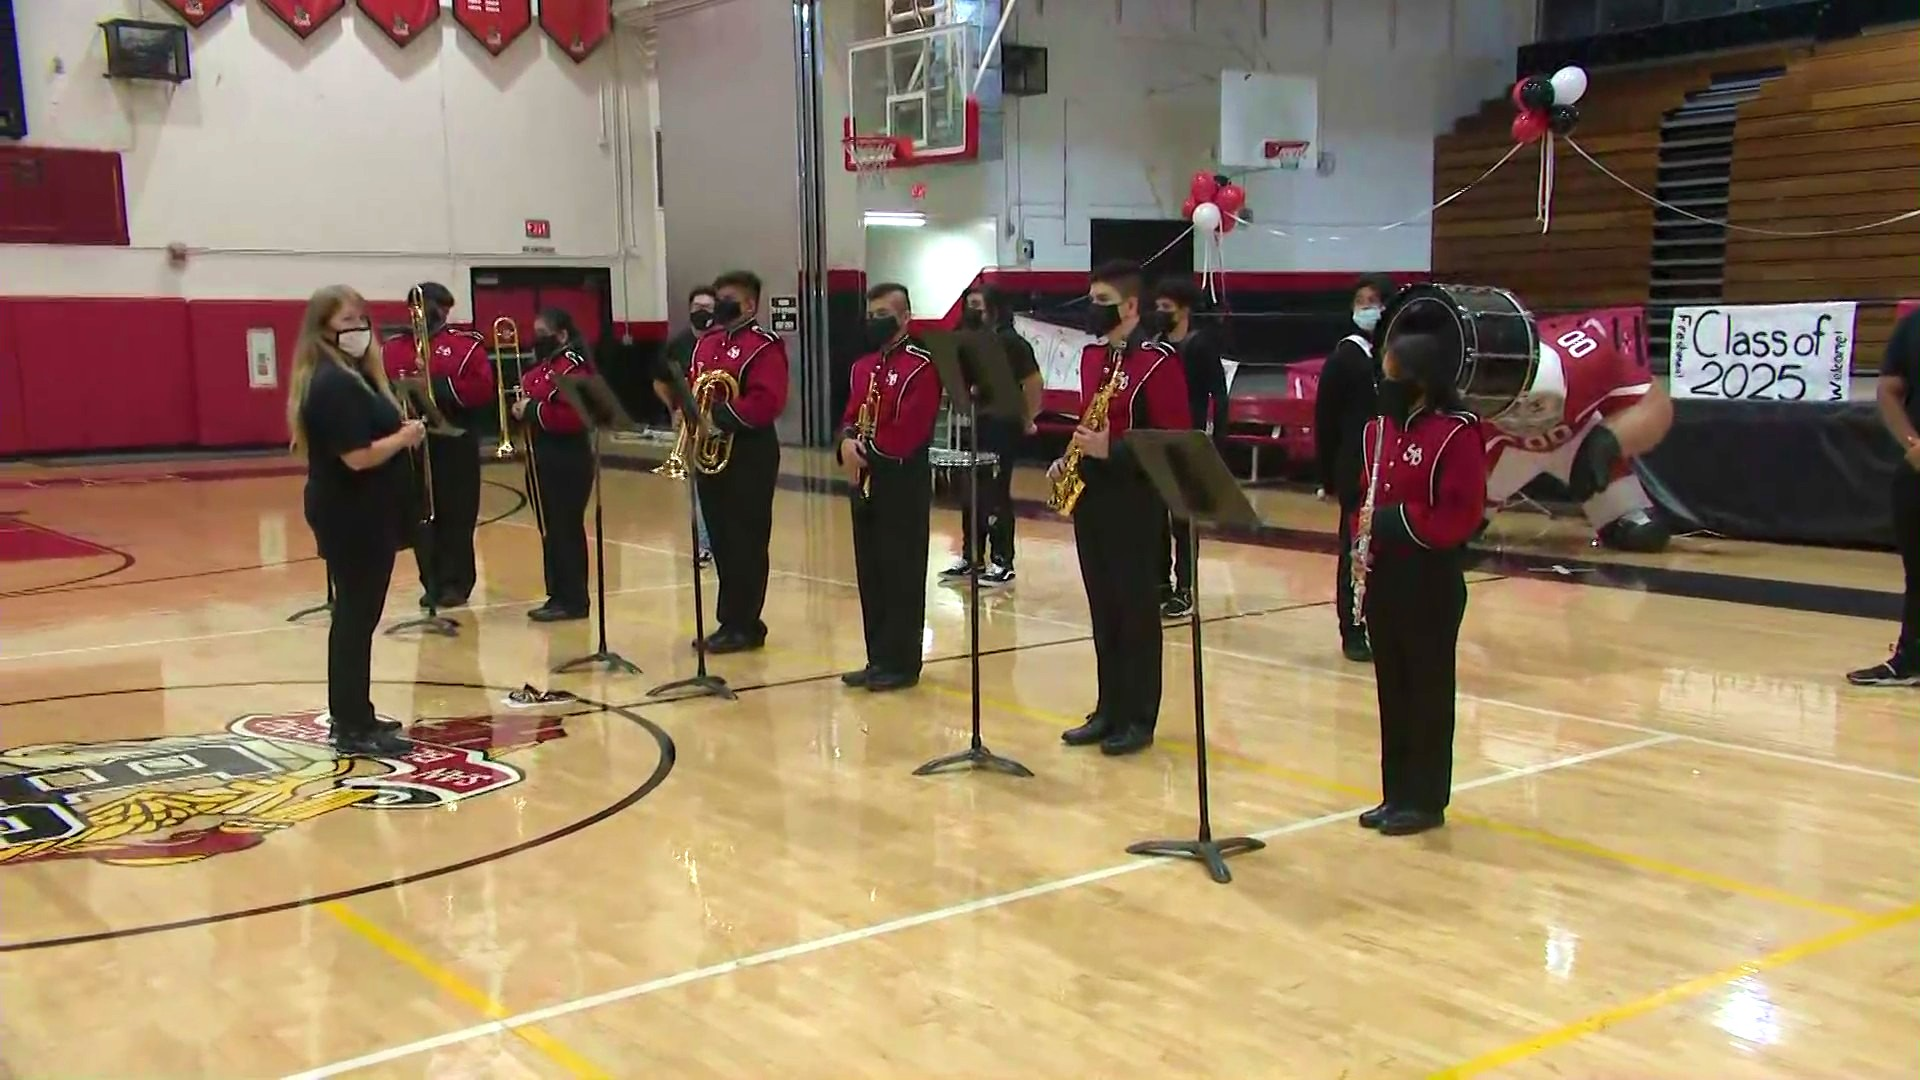 Band members perform as students prepare for the first day of in-person classes on Aug. 2, 2021. (KTLA)